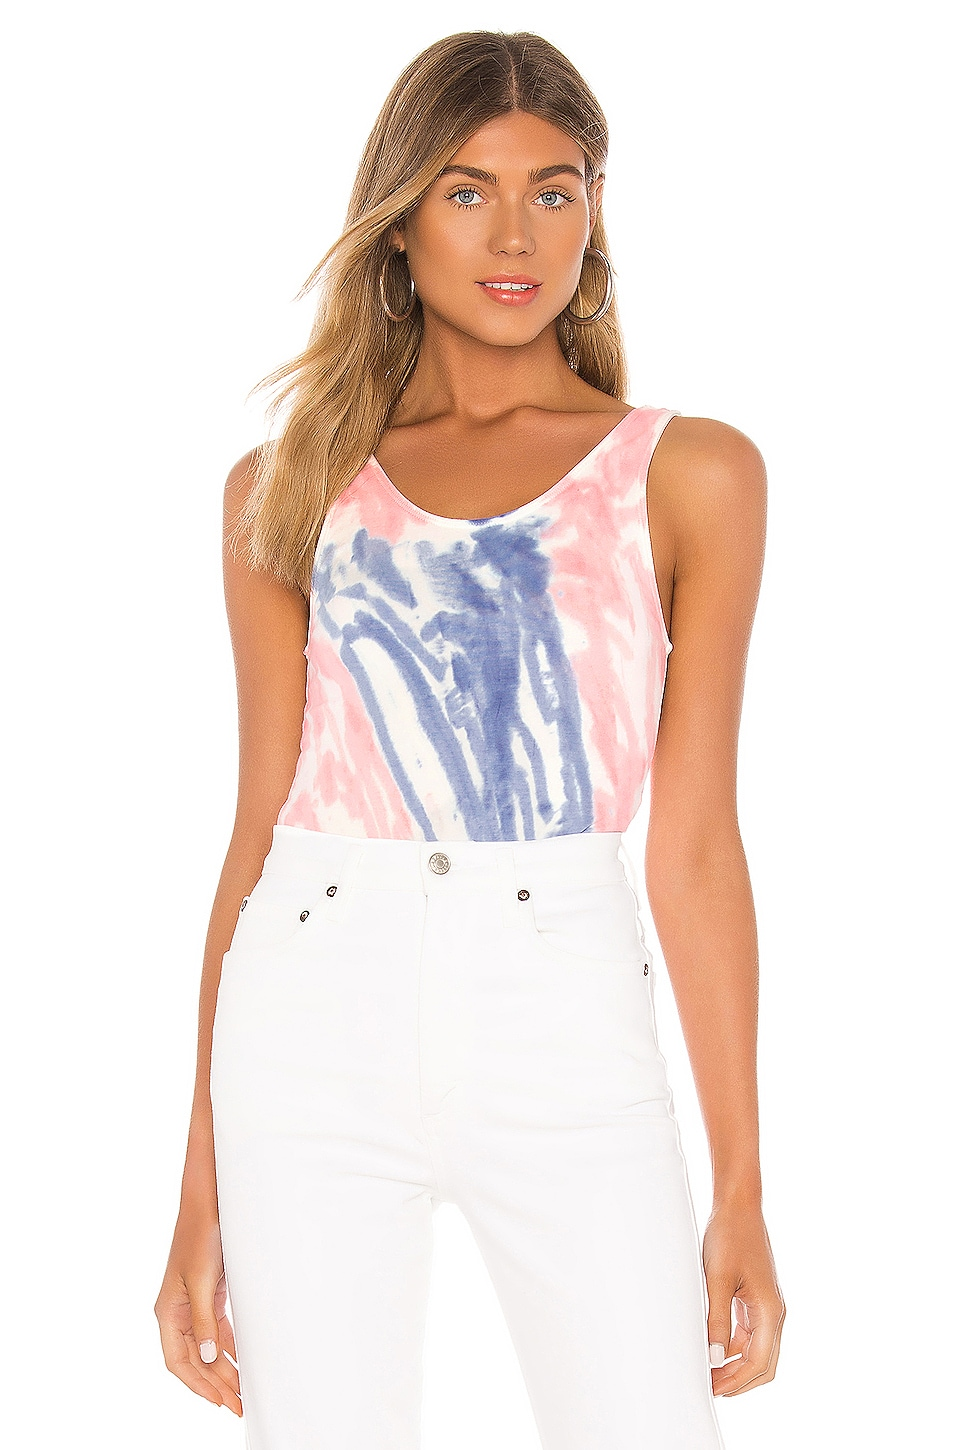 Bodysuit             DAYDREAMER                                                                                                                                         Sale price:                                                                       CA$ 70.21                                                                  Previous price:                                                                       CA$ 116.55 8